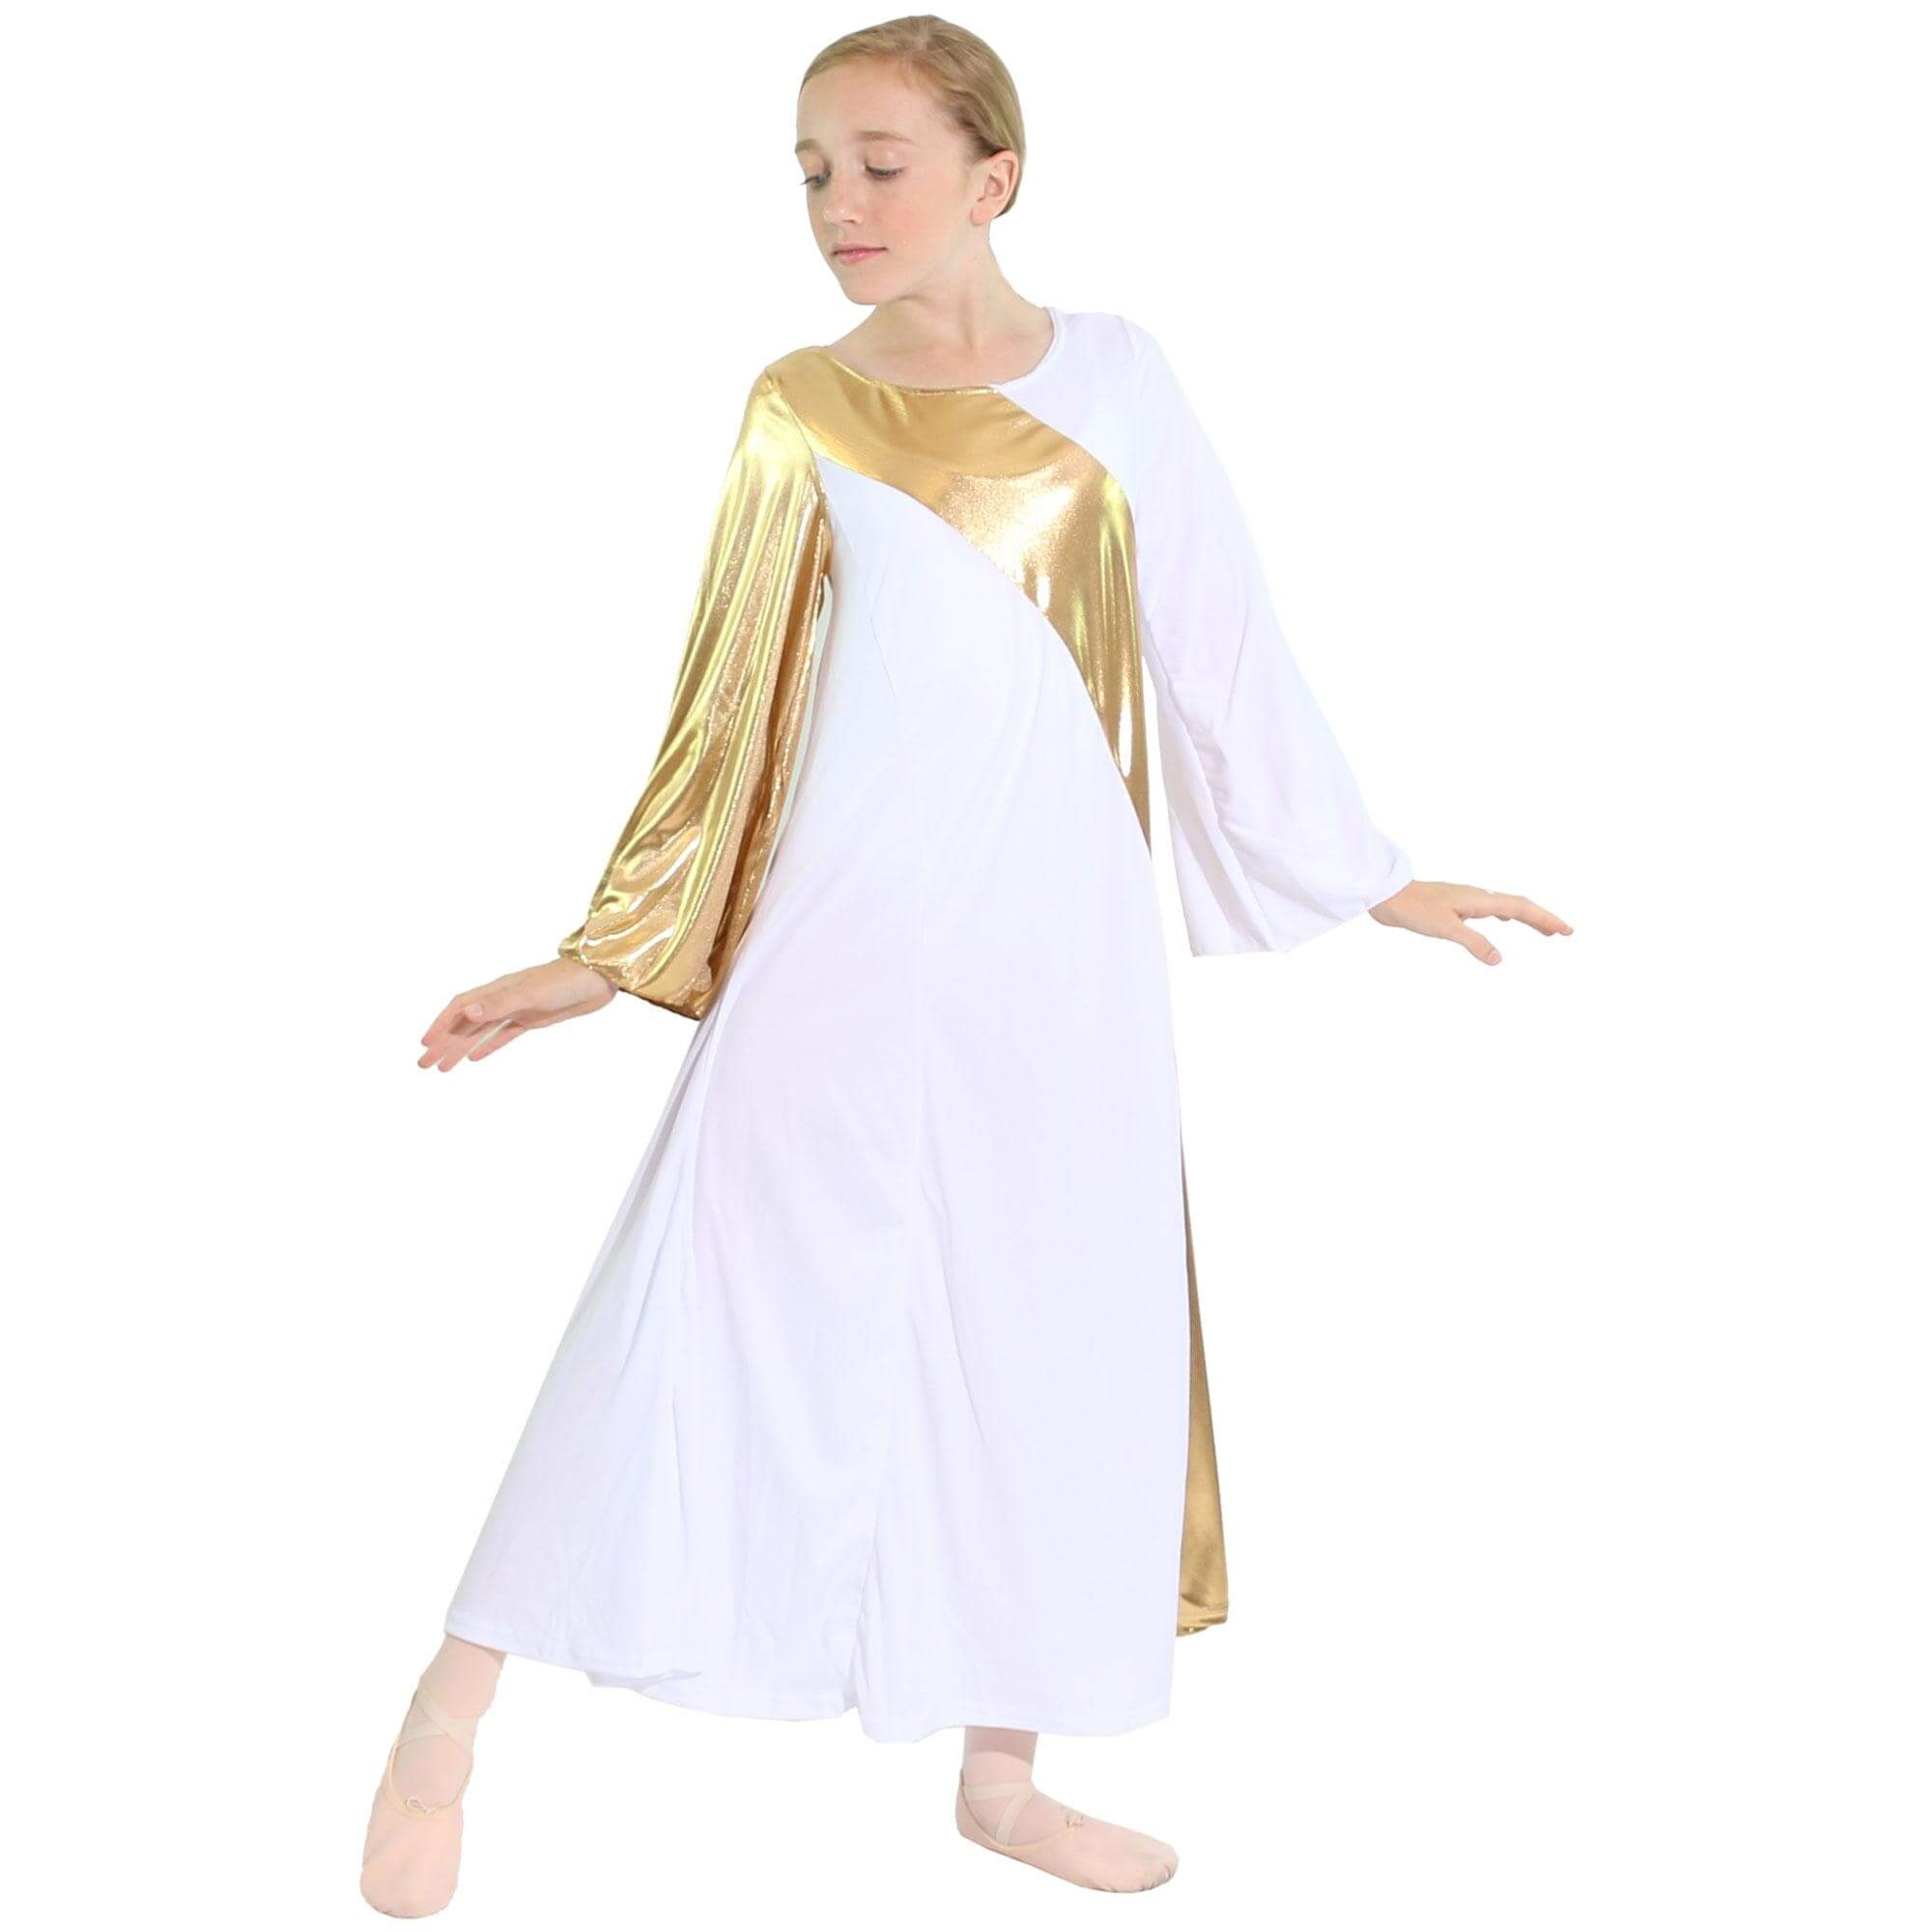 Danzcue Child Praise Dance Asymmetrical Bell Sleeve Dress